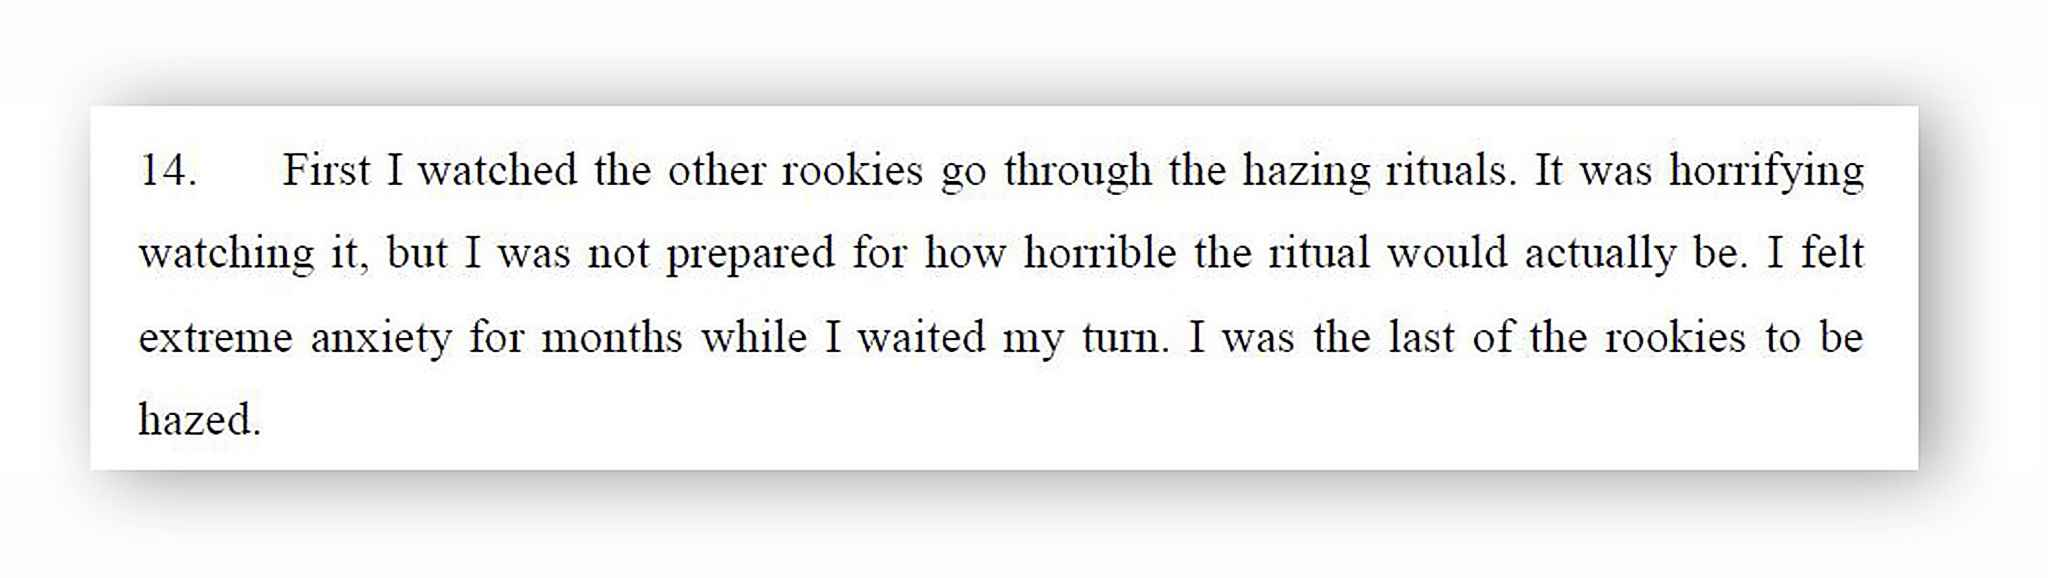 "From the affidavit of a former player: ""I felt extreme anxiety for months while I waited my turn. I was the last of the rookies to be hazed."""